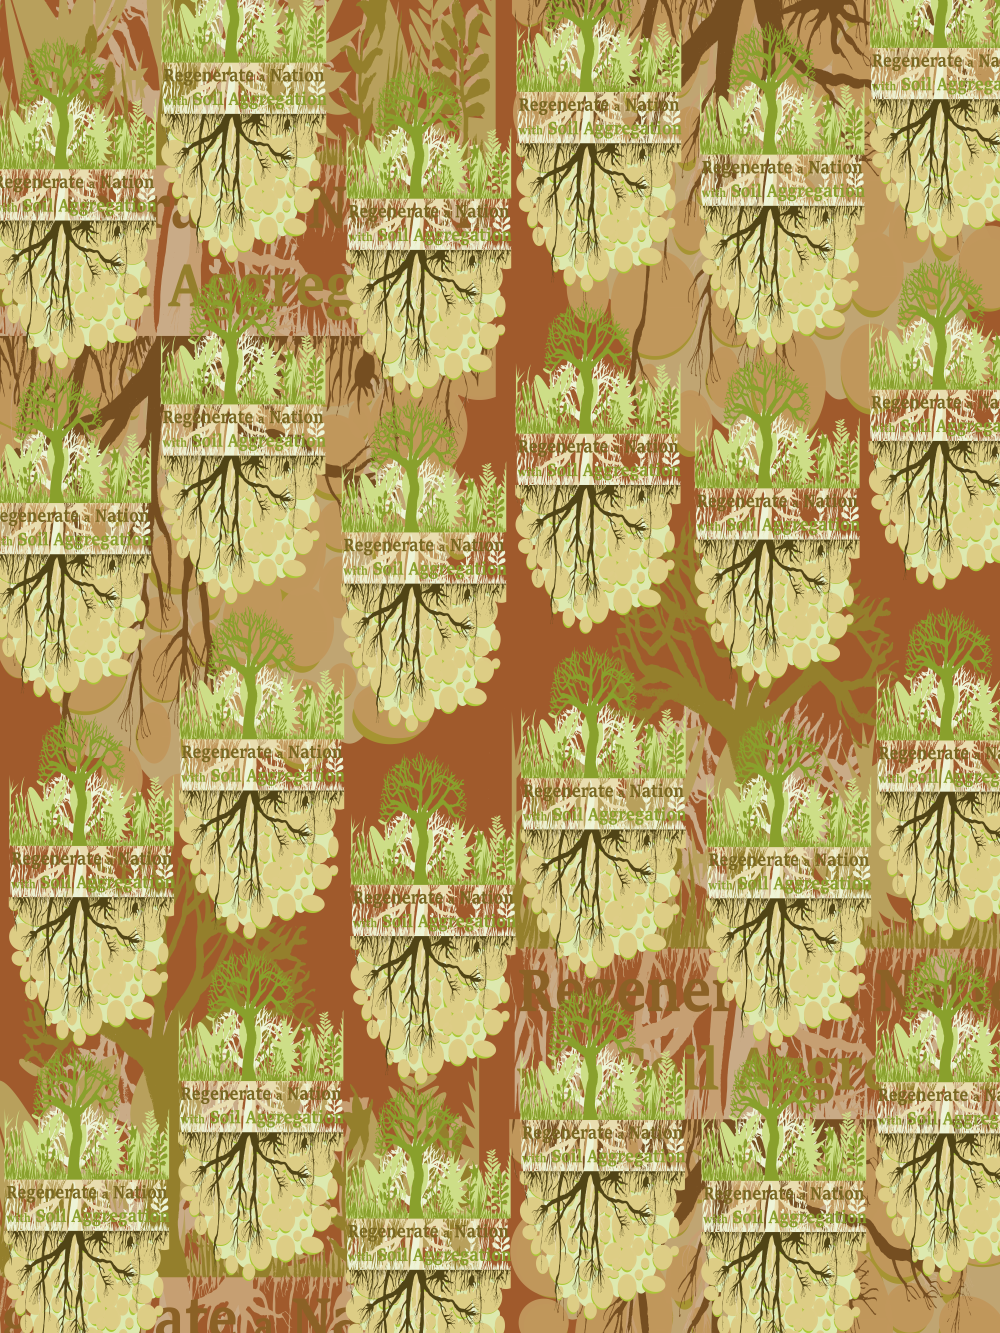 Soil Regeneration: Downloadable gift wrap you can print at home.